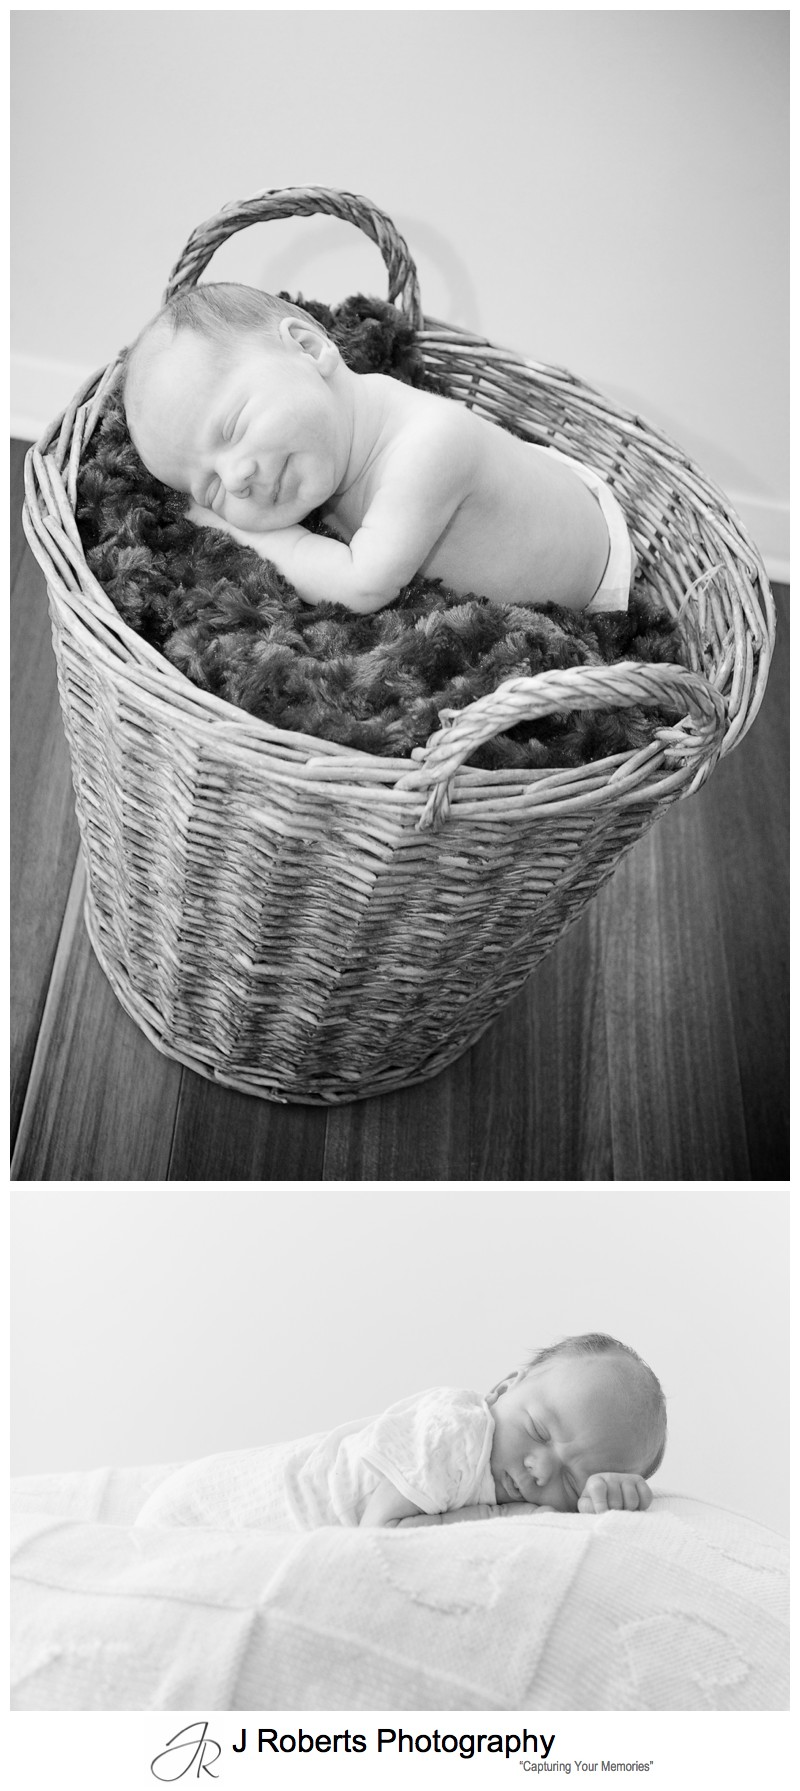 Baby portrait photography in a basket - newborn baby portrait photography sydney